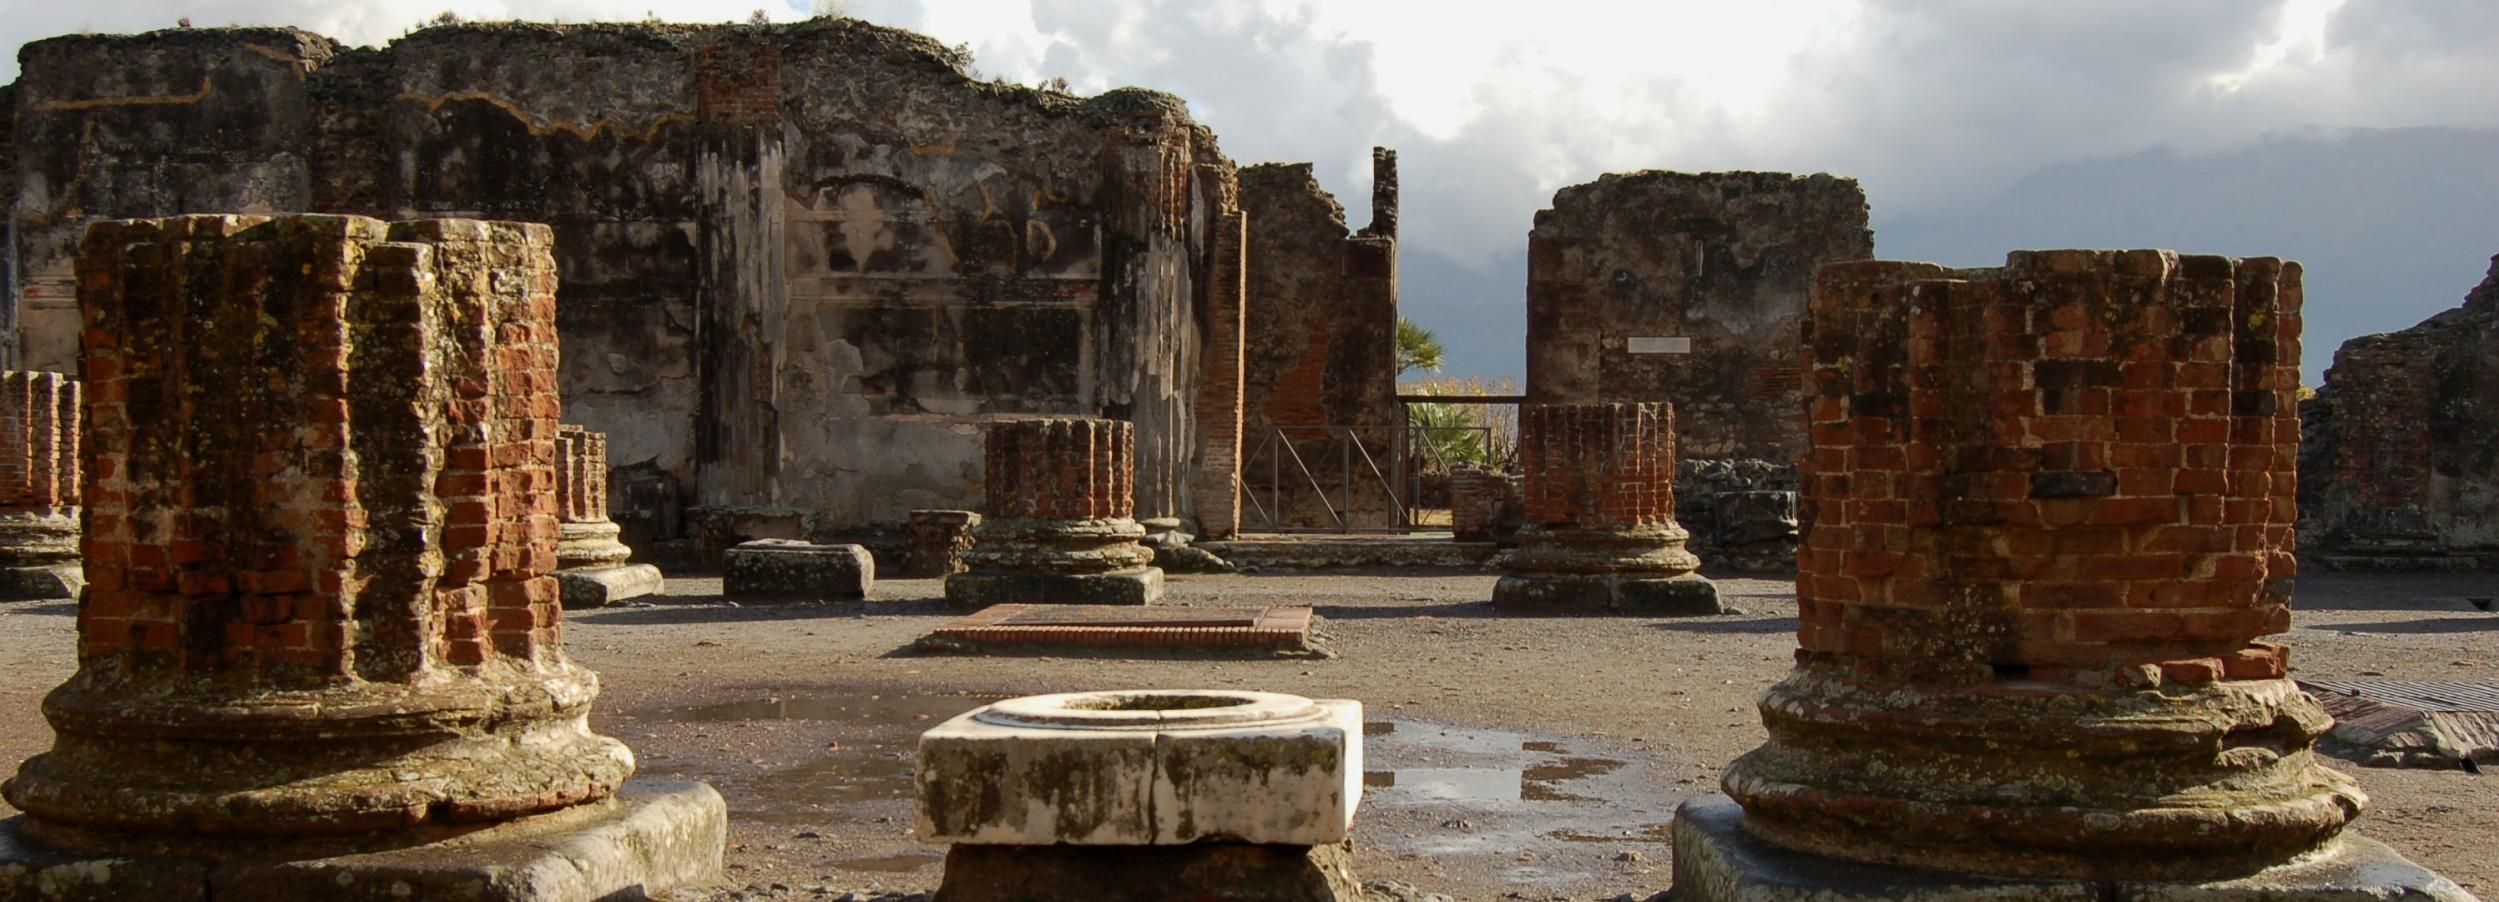 Herculaneum and Pompei group excursion from Sorrento